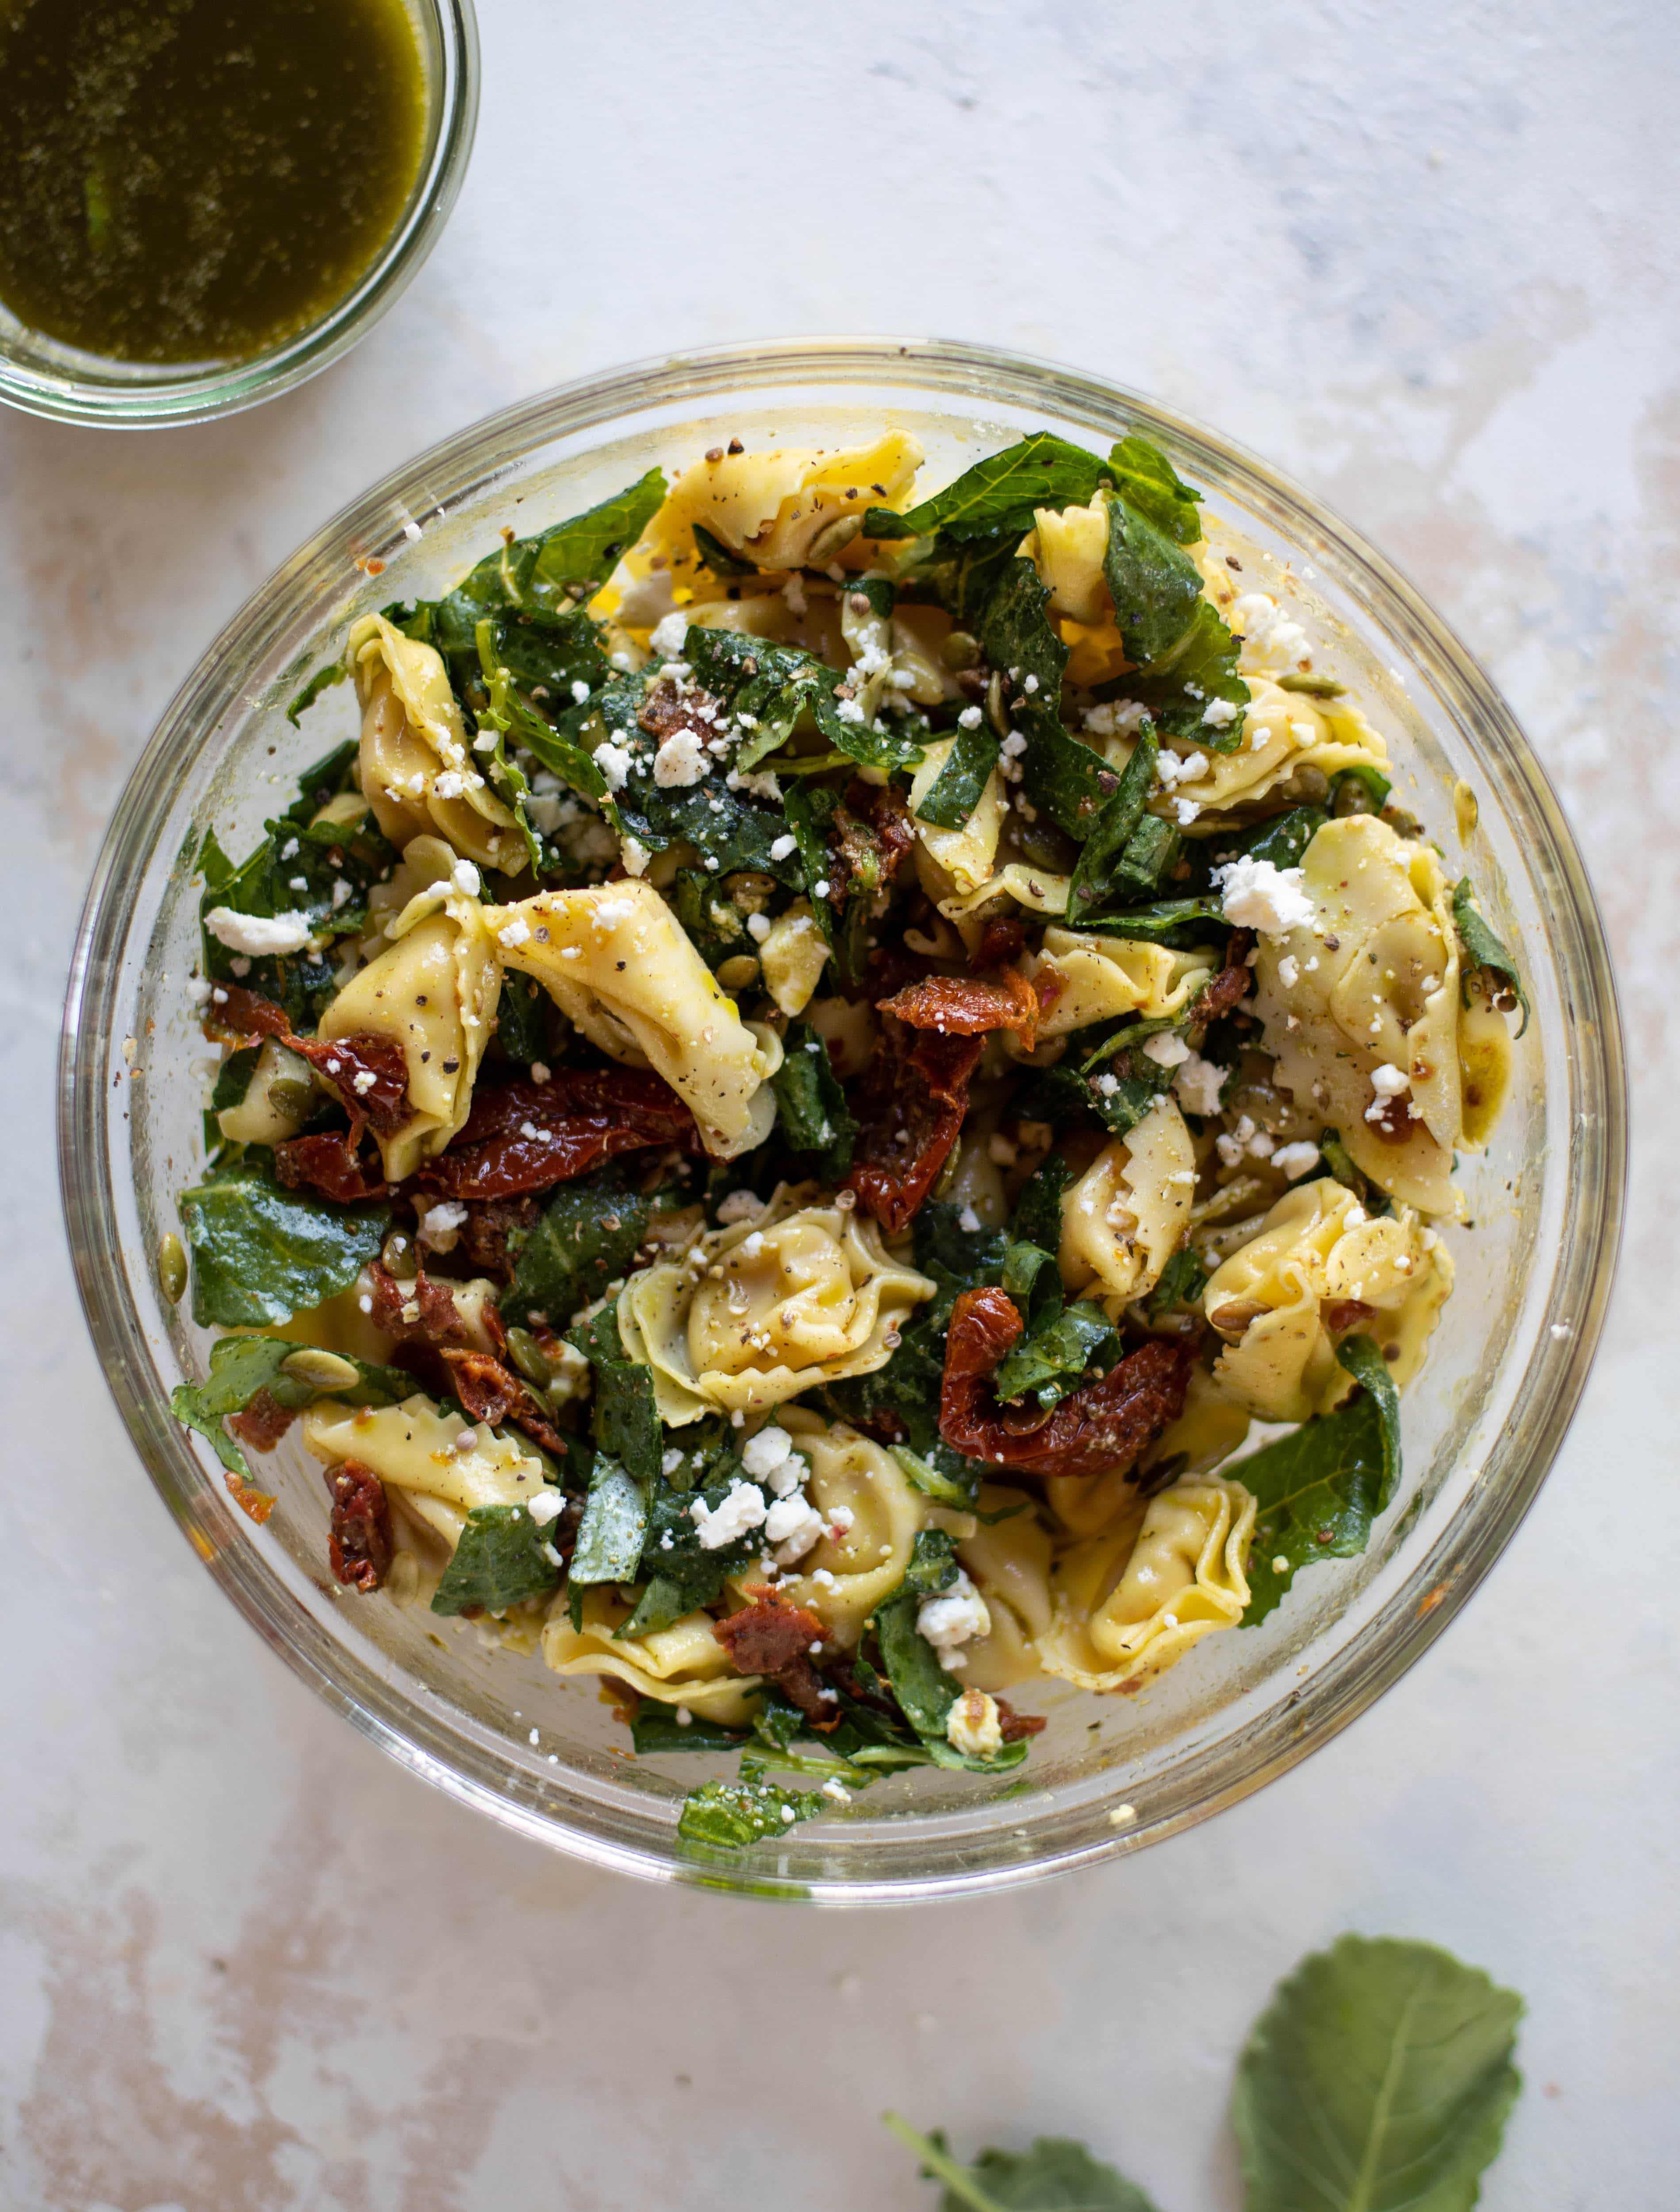 This cilantro lime tortellini salad is loaded with flavor! Served warm or cold, it has pepitas, sun dried tomatoes and crumbled feta. It's ridiculously good!